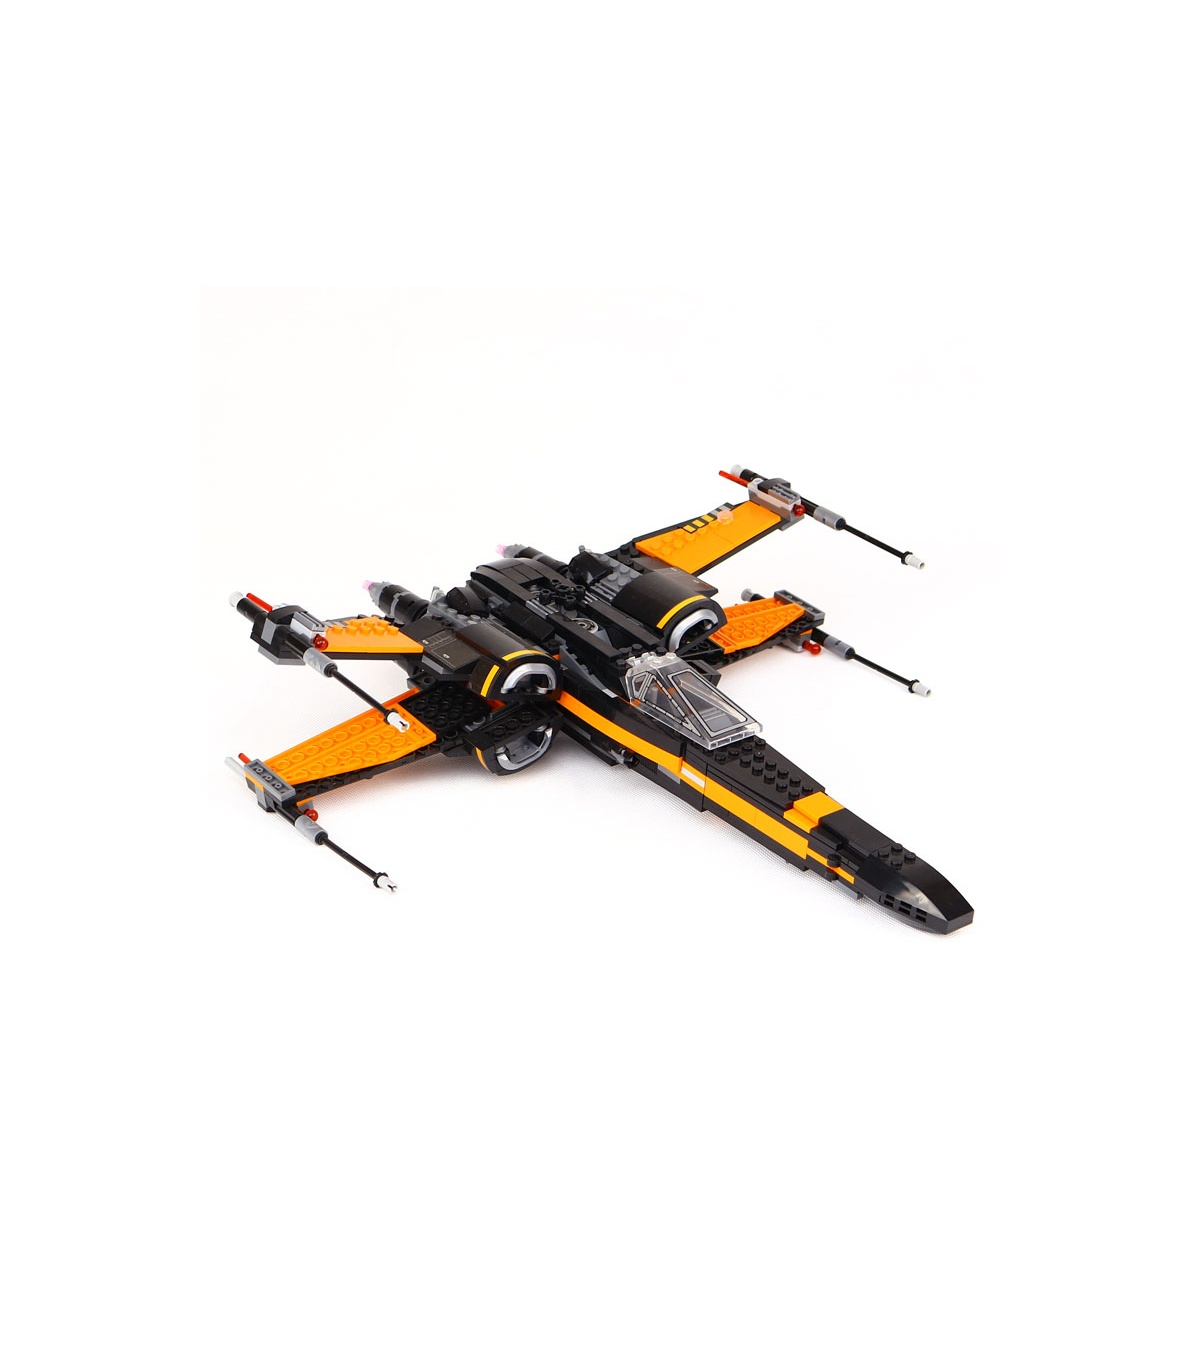 Custom Star Wars Poe's X-Wing Fighter Building Bricks Toy Set 784 Pieces, (MOC Custom Brick Sets, Compatible Building Blocks Toys Ideas, Building Bricks Meaning)